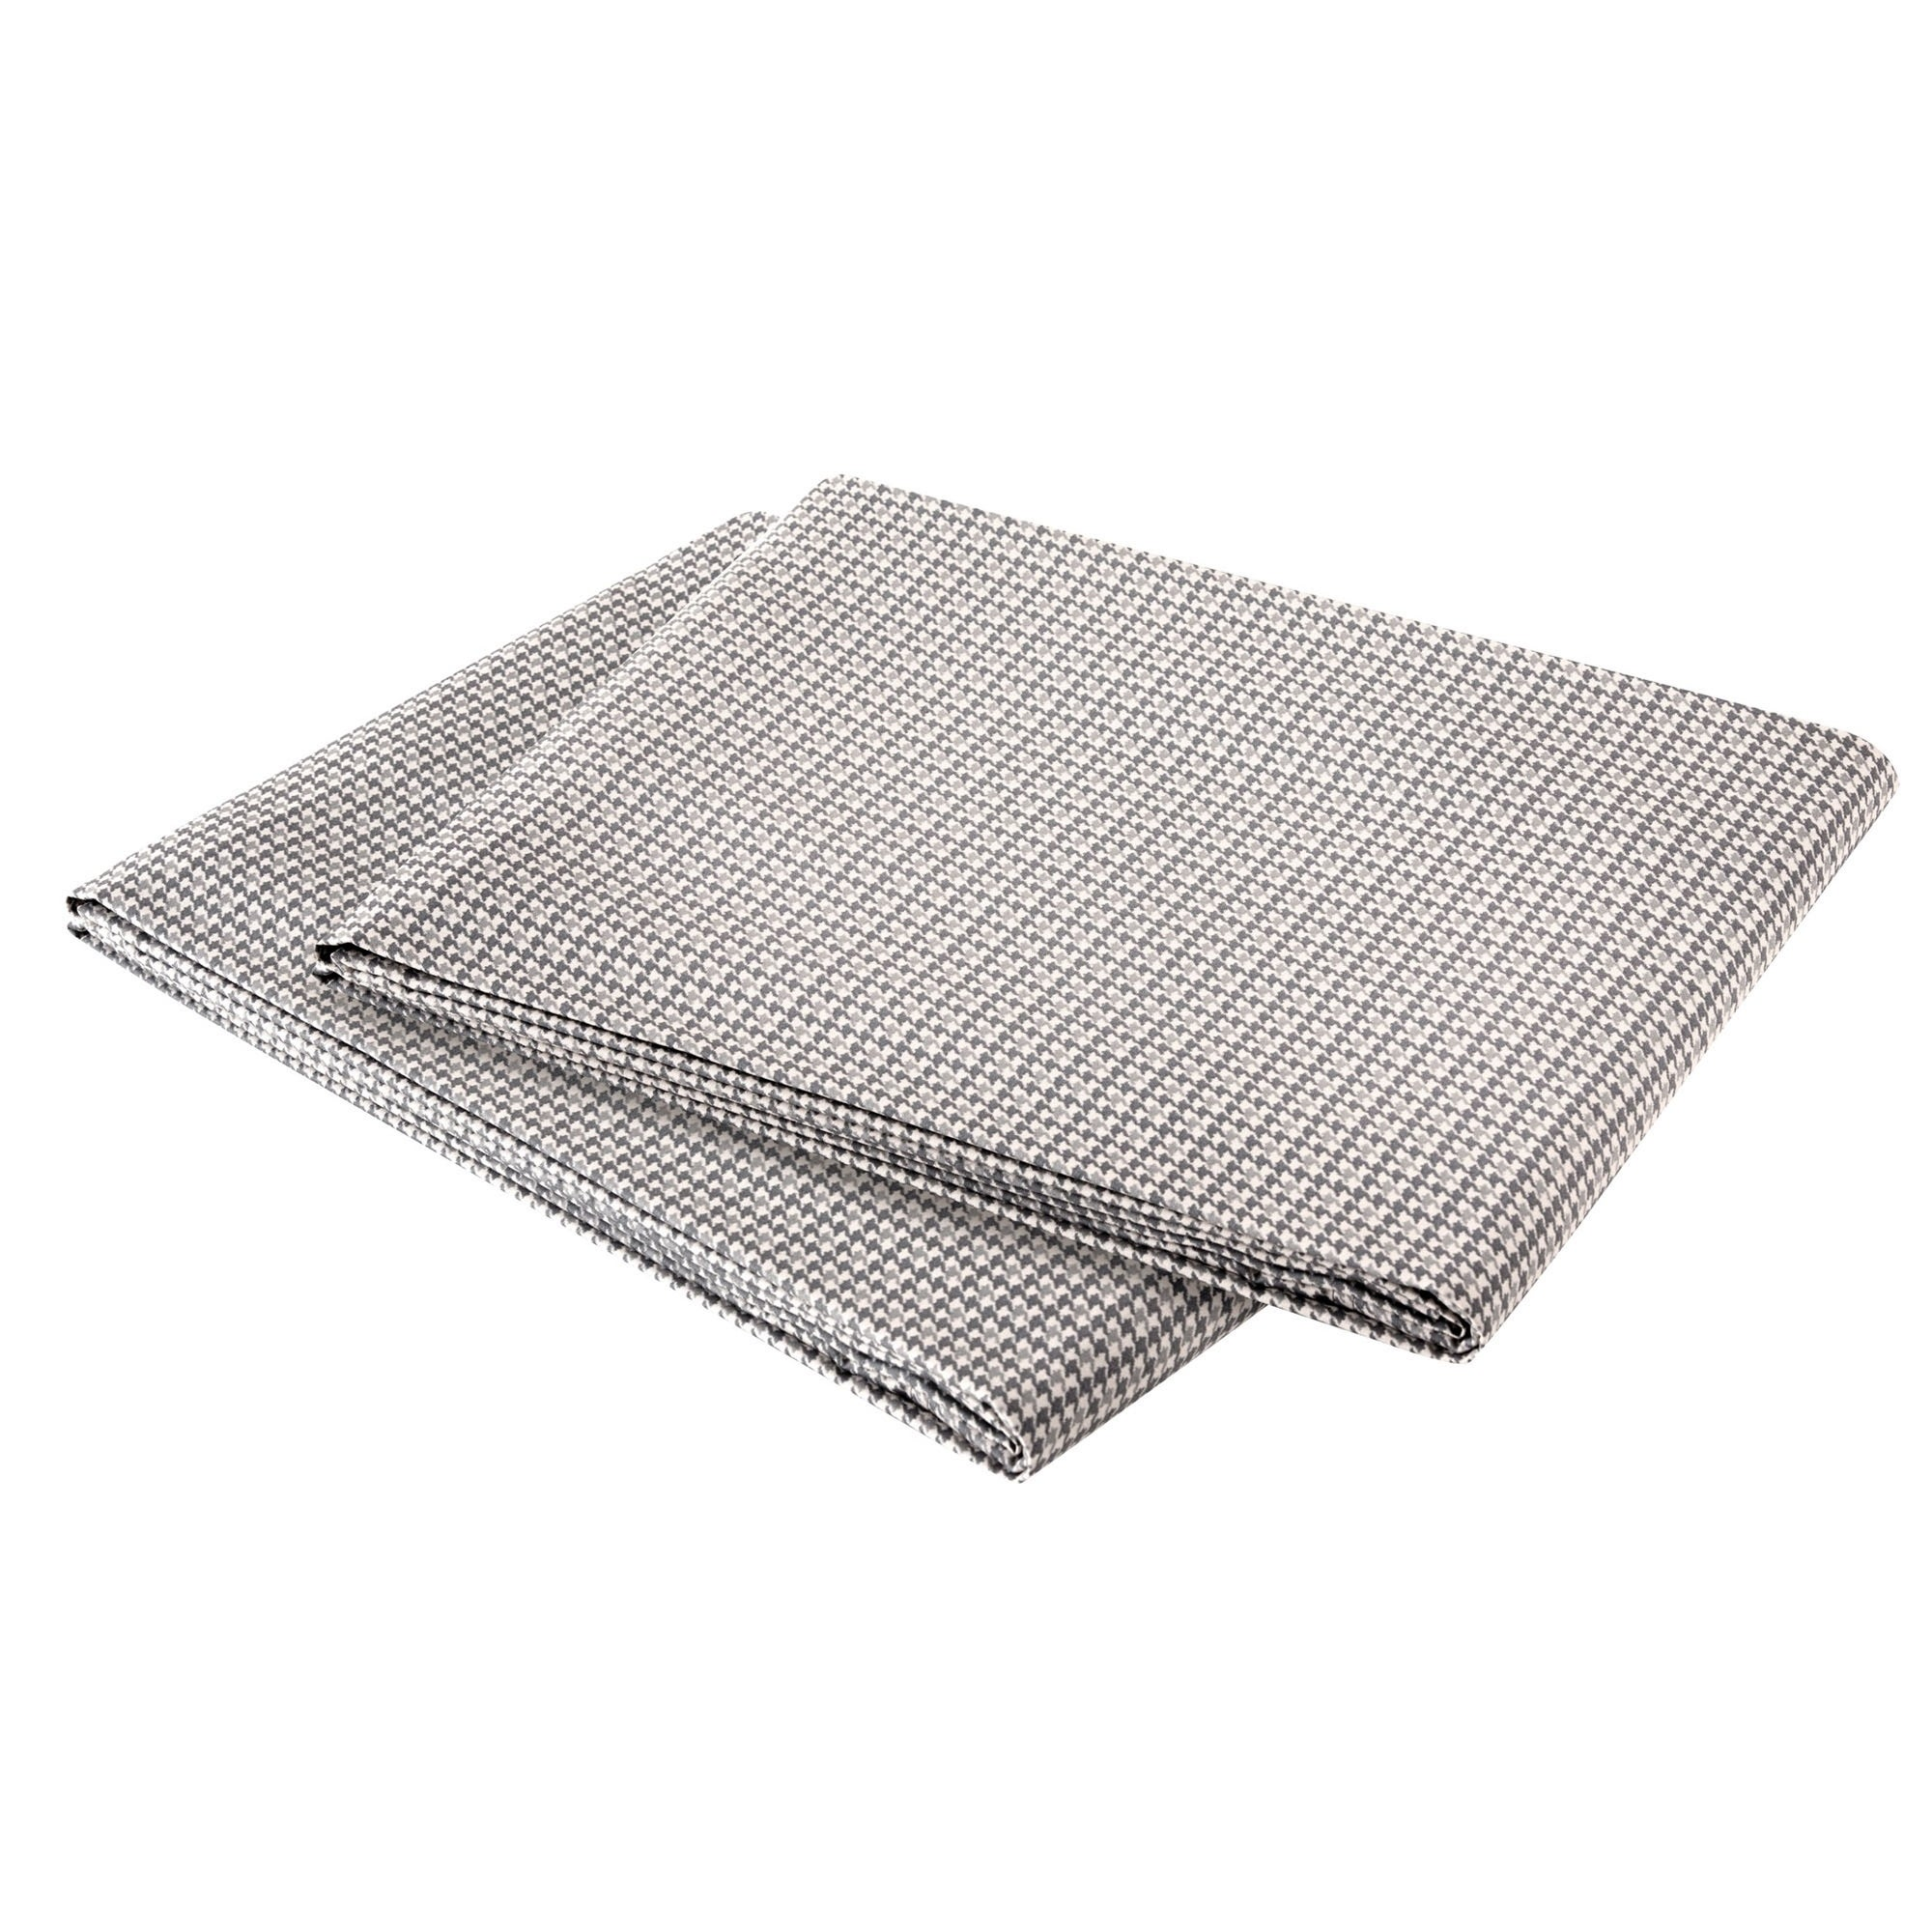 Houndstooth King Sateen Sheet Set, Grey - Free Shipping Today ...